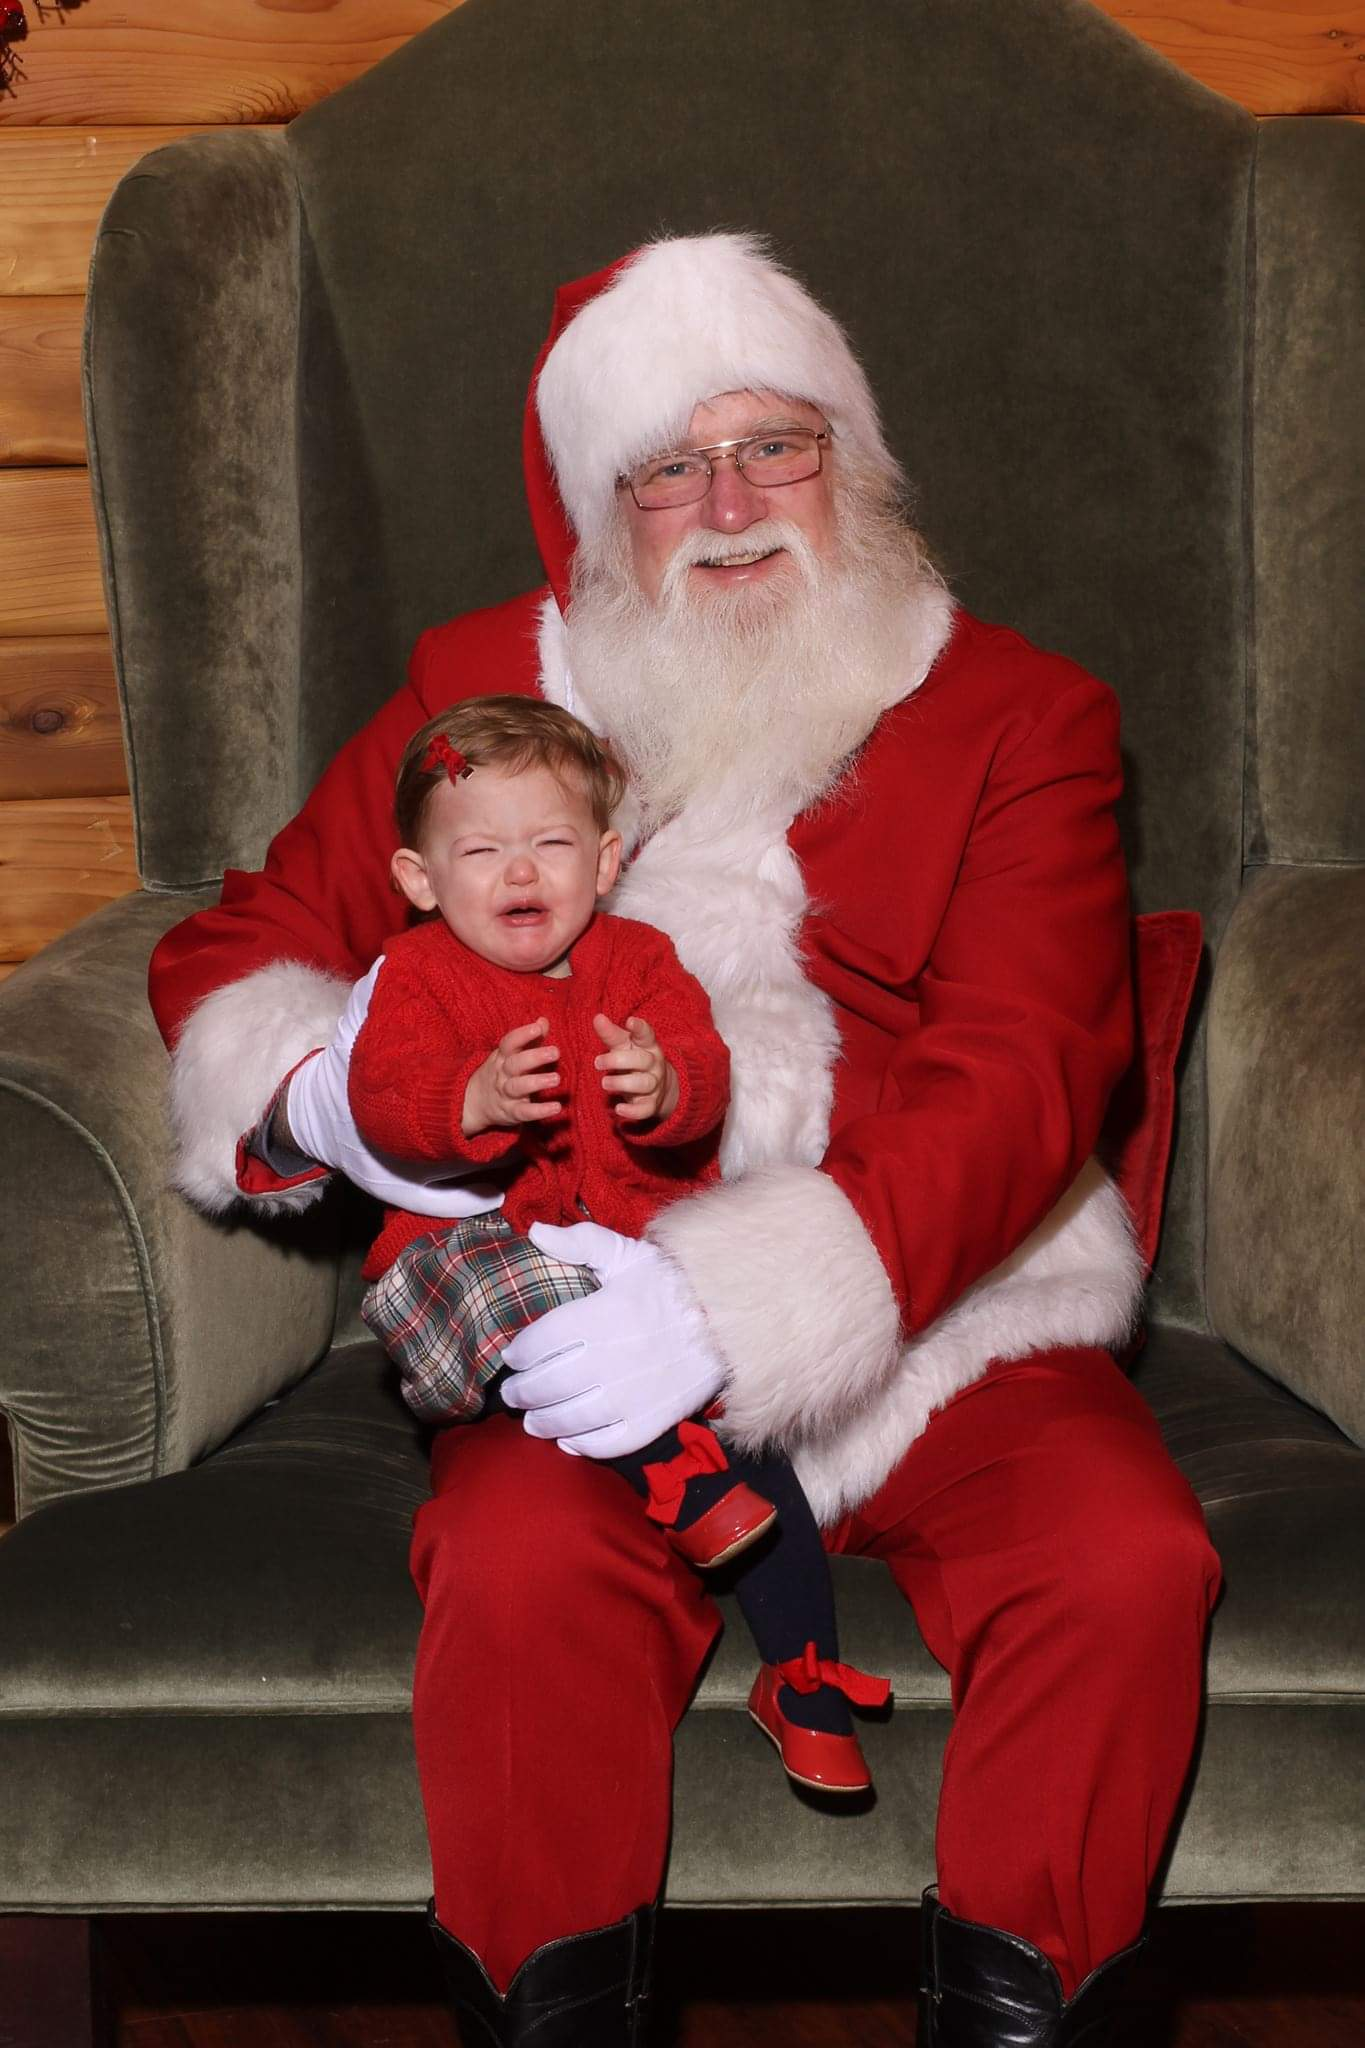 Ah, Santa Claus - the glorious bearded man in the big red suit who fulfills our kiddos holiday dreams and wishes.  Also doubling as, apparently, the scariest man alive. Grab a glass of eggnog, sit back and feast your eyes on these Santa pics gone wrong - or as I call them...realistic Santa pics. (Image: Erin and Rob Schmaus){ }